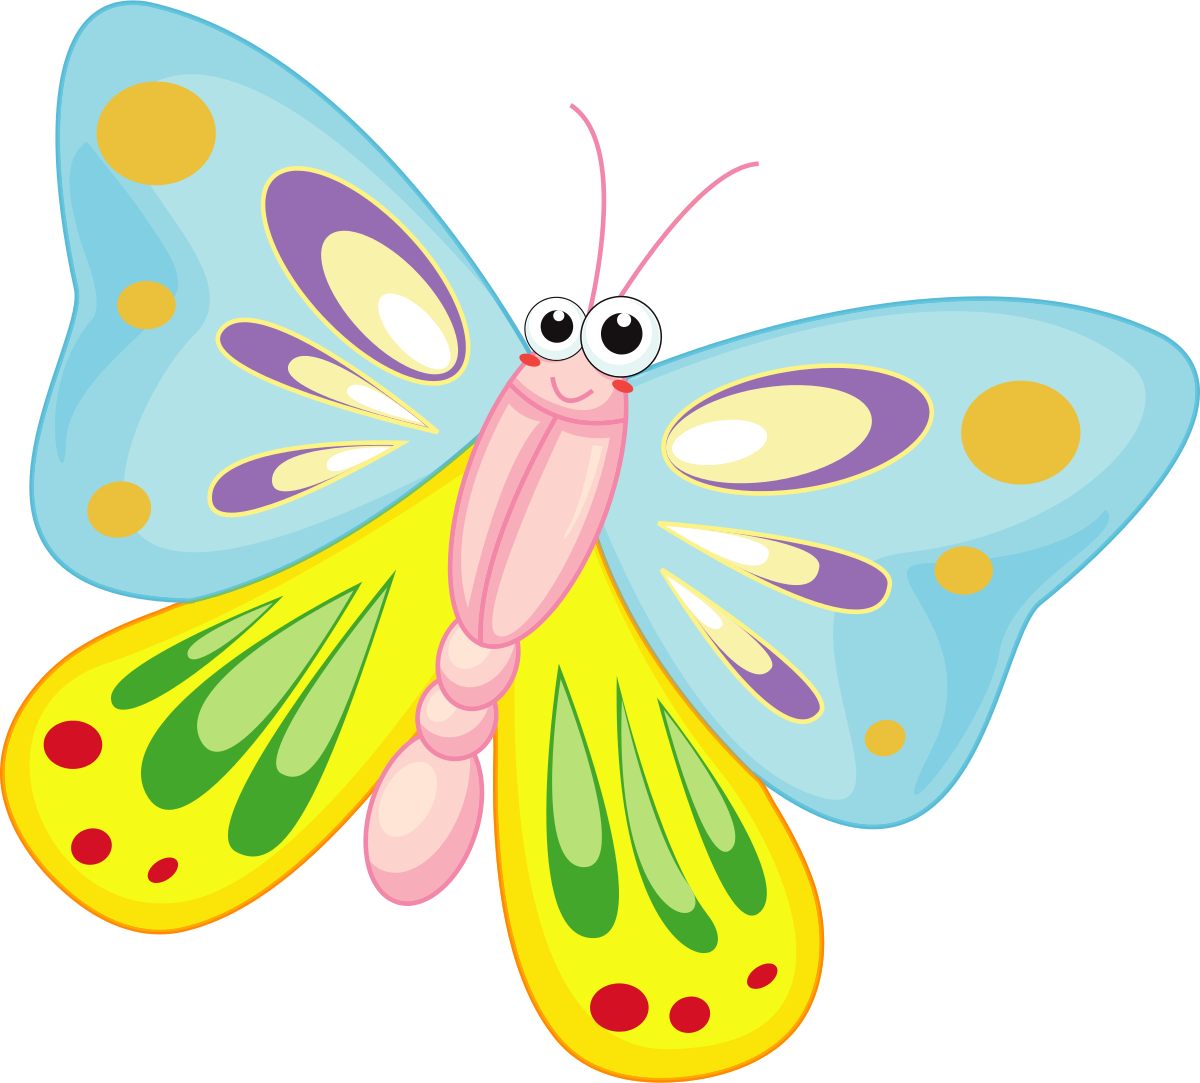 animated butterfly clipart free - photo #47